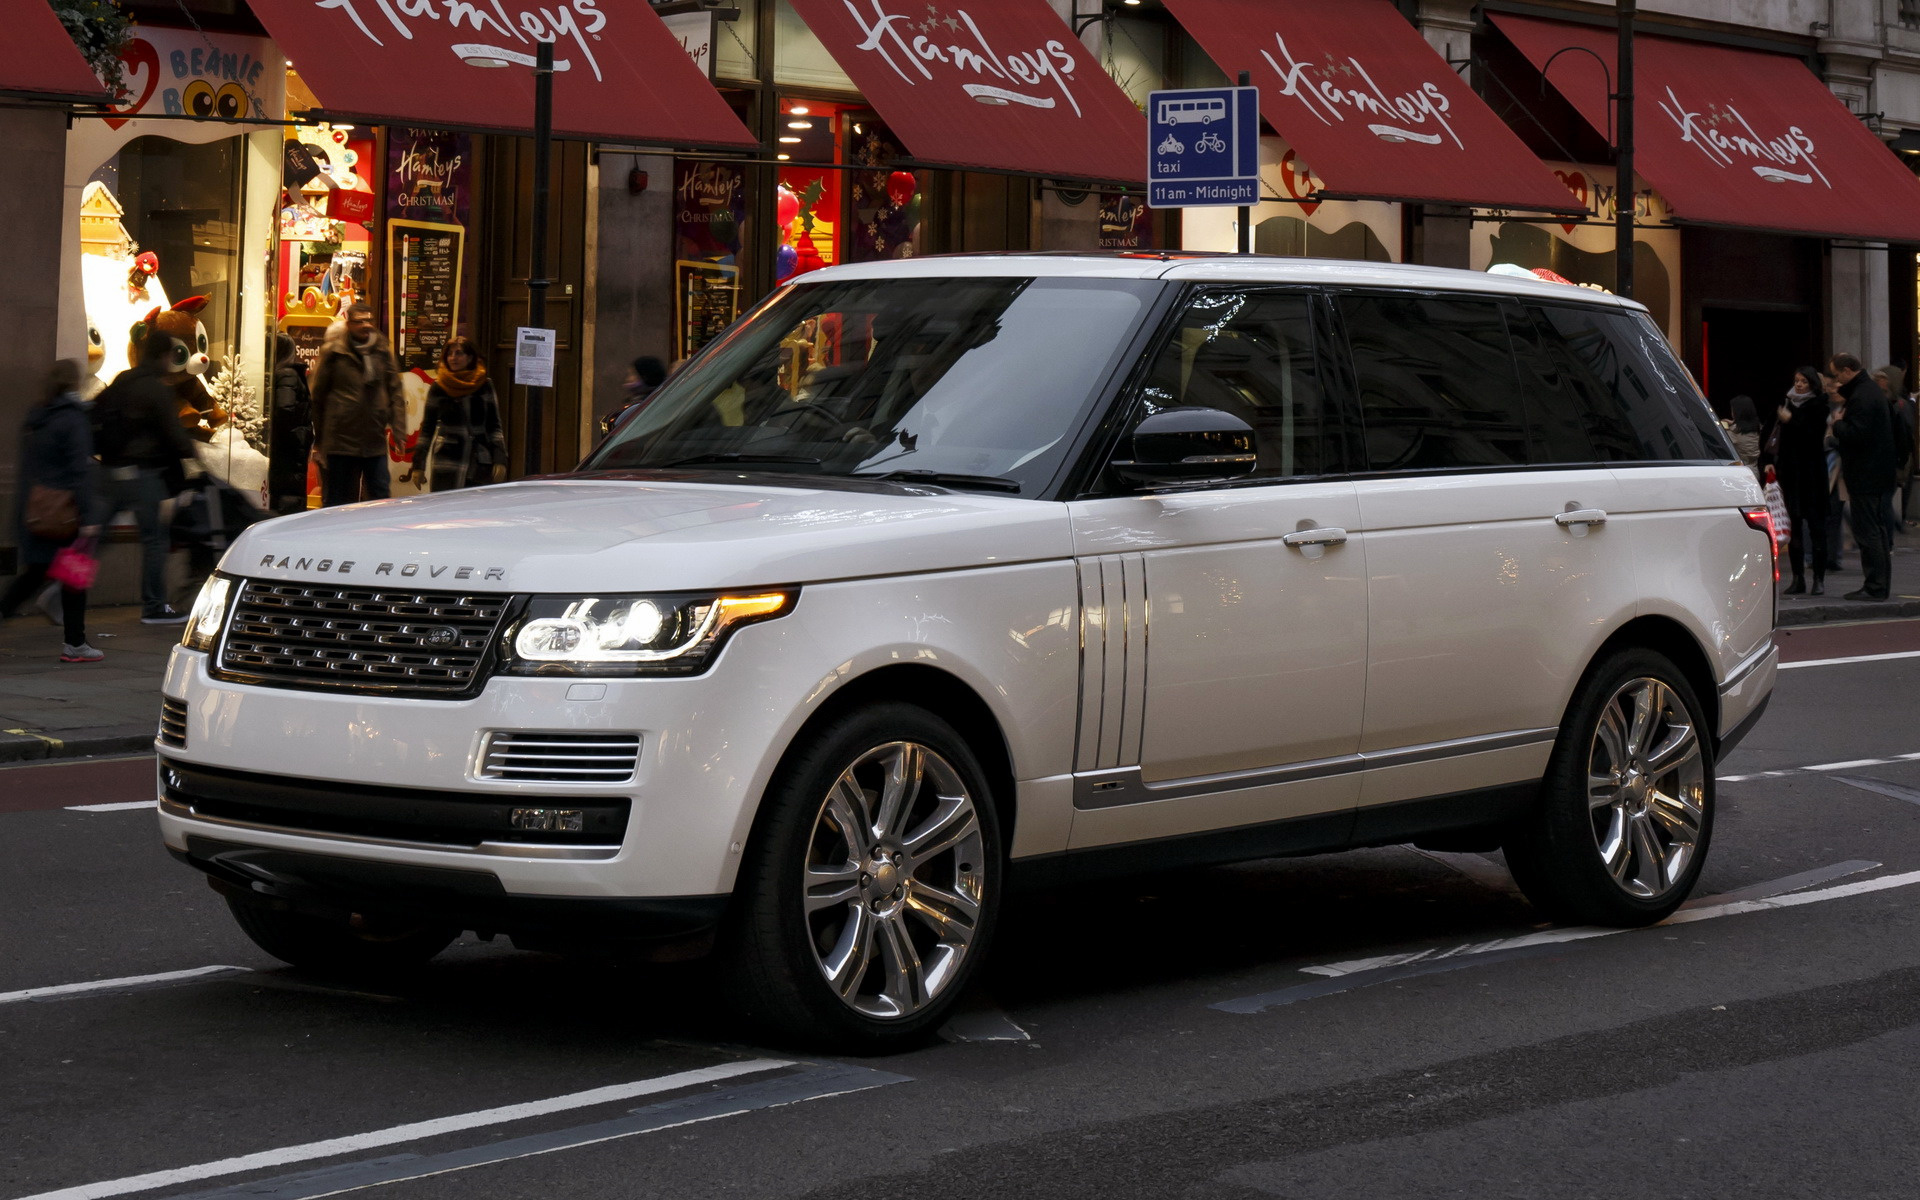 Range Rover Autobiography >> 2014 Range Rover Autobiography Black [LWB] (UK) - Wallpapers and HD Images | Car Pixel